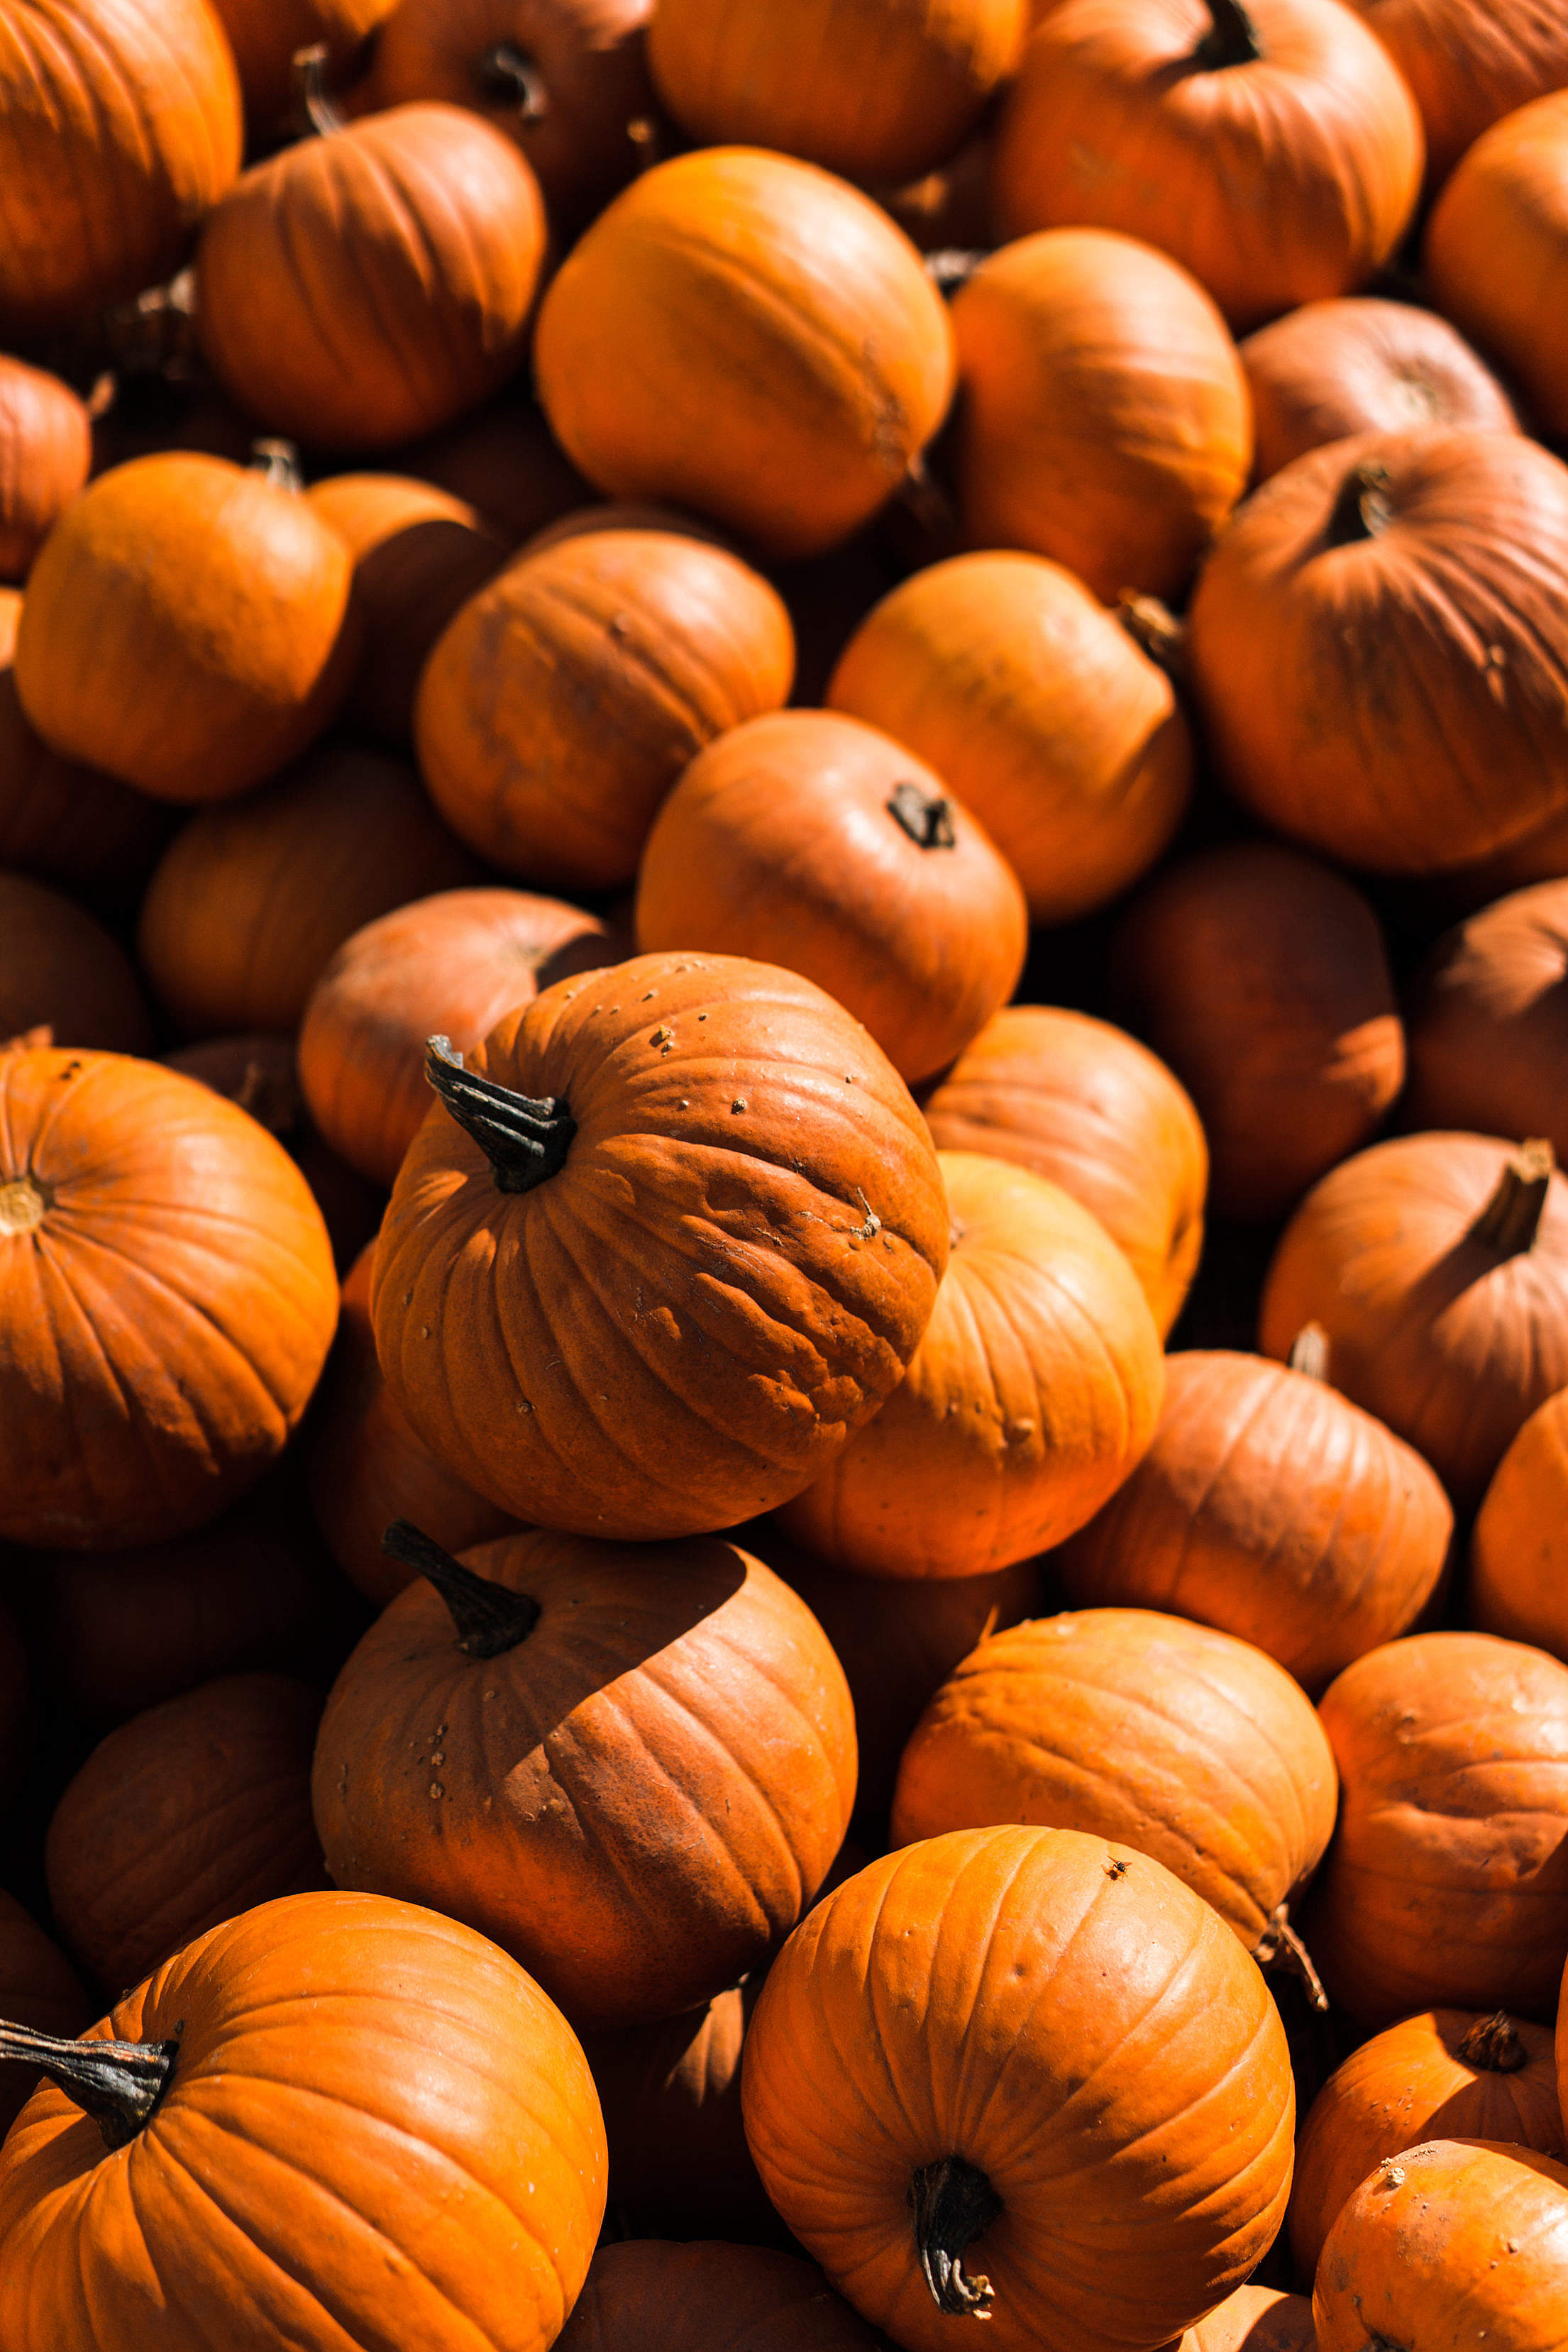 Pile of Pumpkins Vertical Free Stock Photo